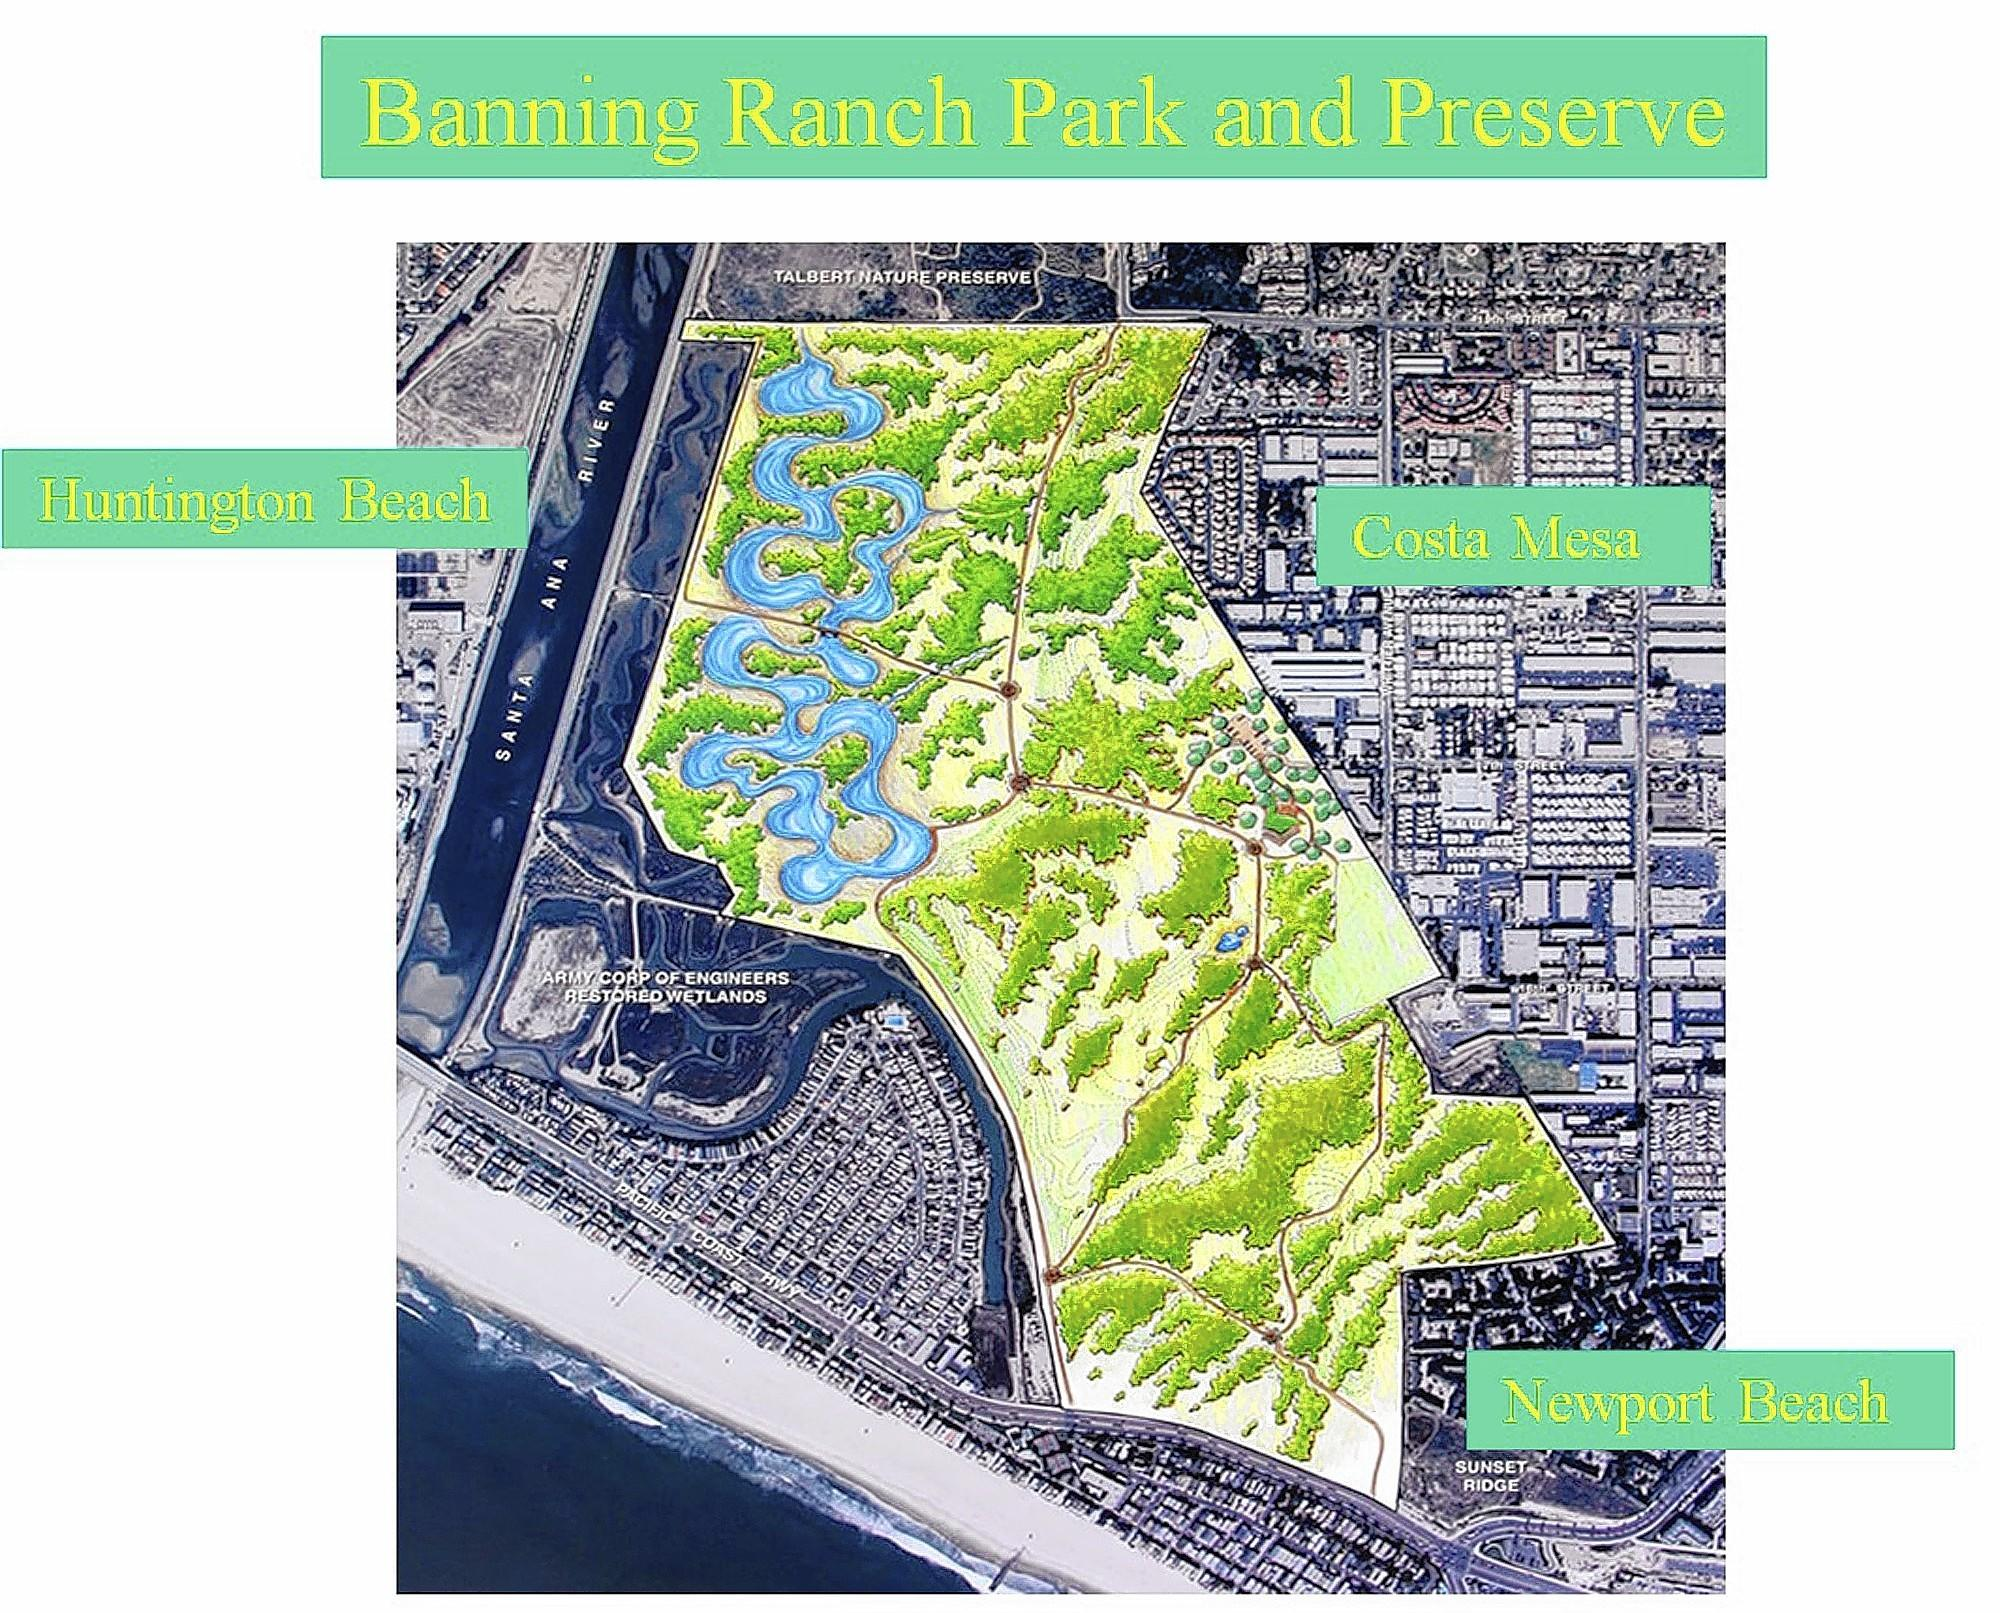 Pictured is Banning Ranch Conservancy's vision of what to do with the 400 acres: a nature preserve free of development.